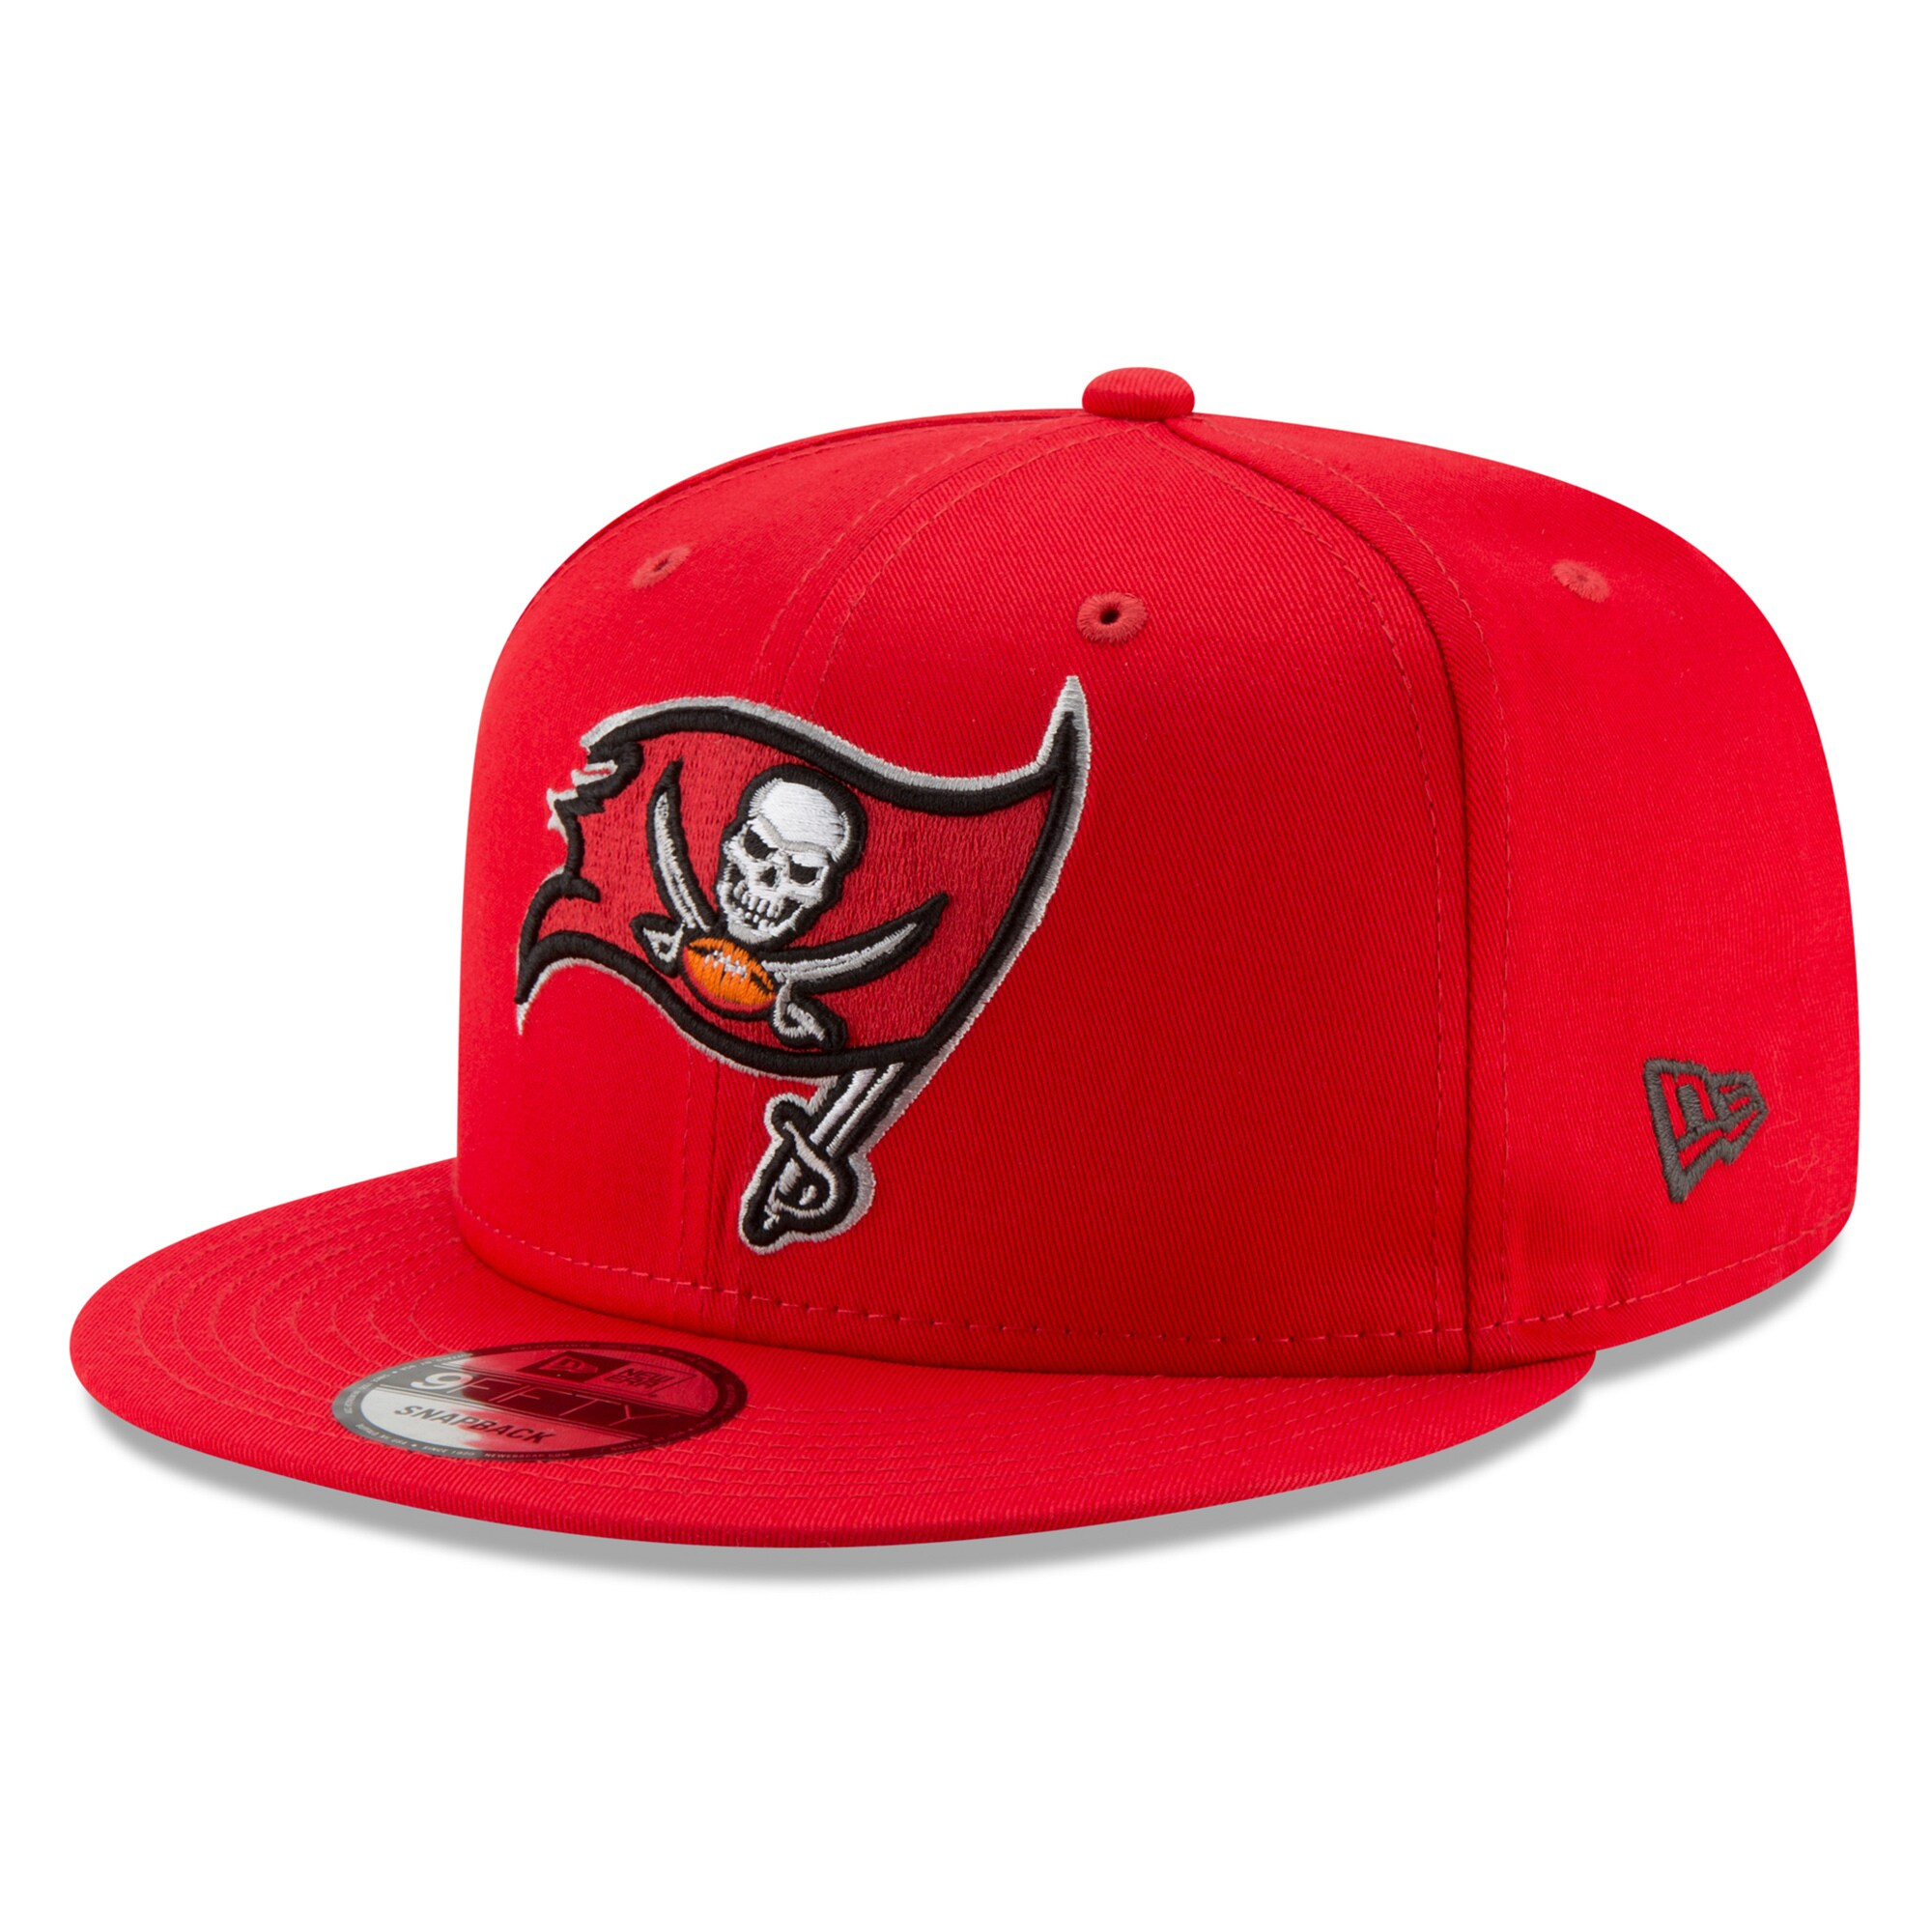 Tampa Bay Buccaneers New Era Basic 9FIFTY Adjustable Snapback Hat - Red